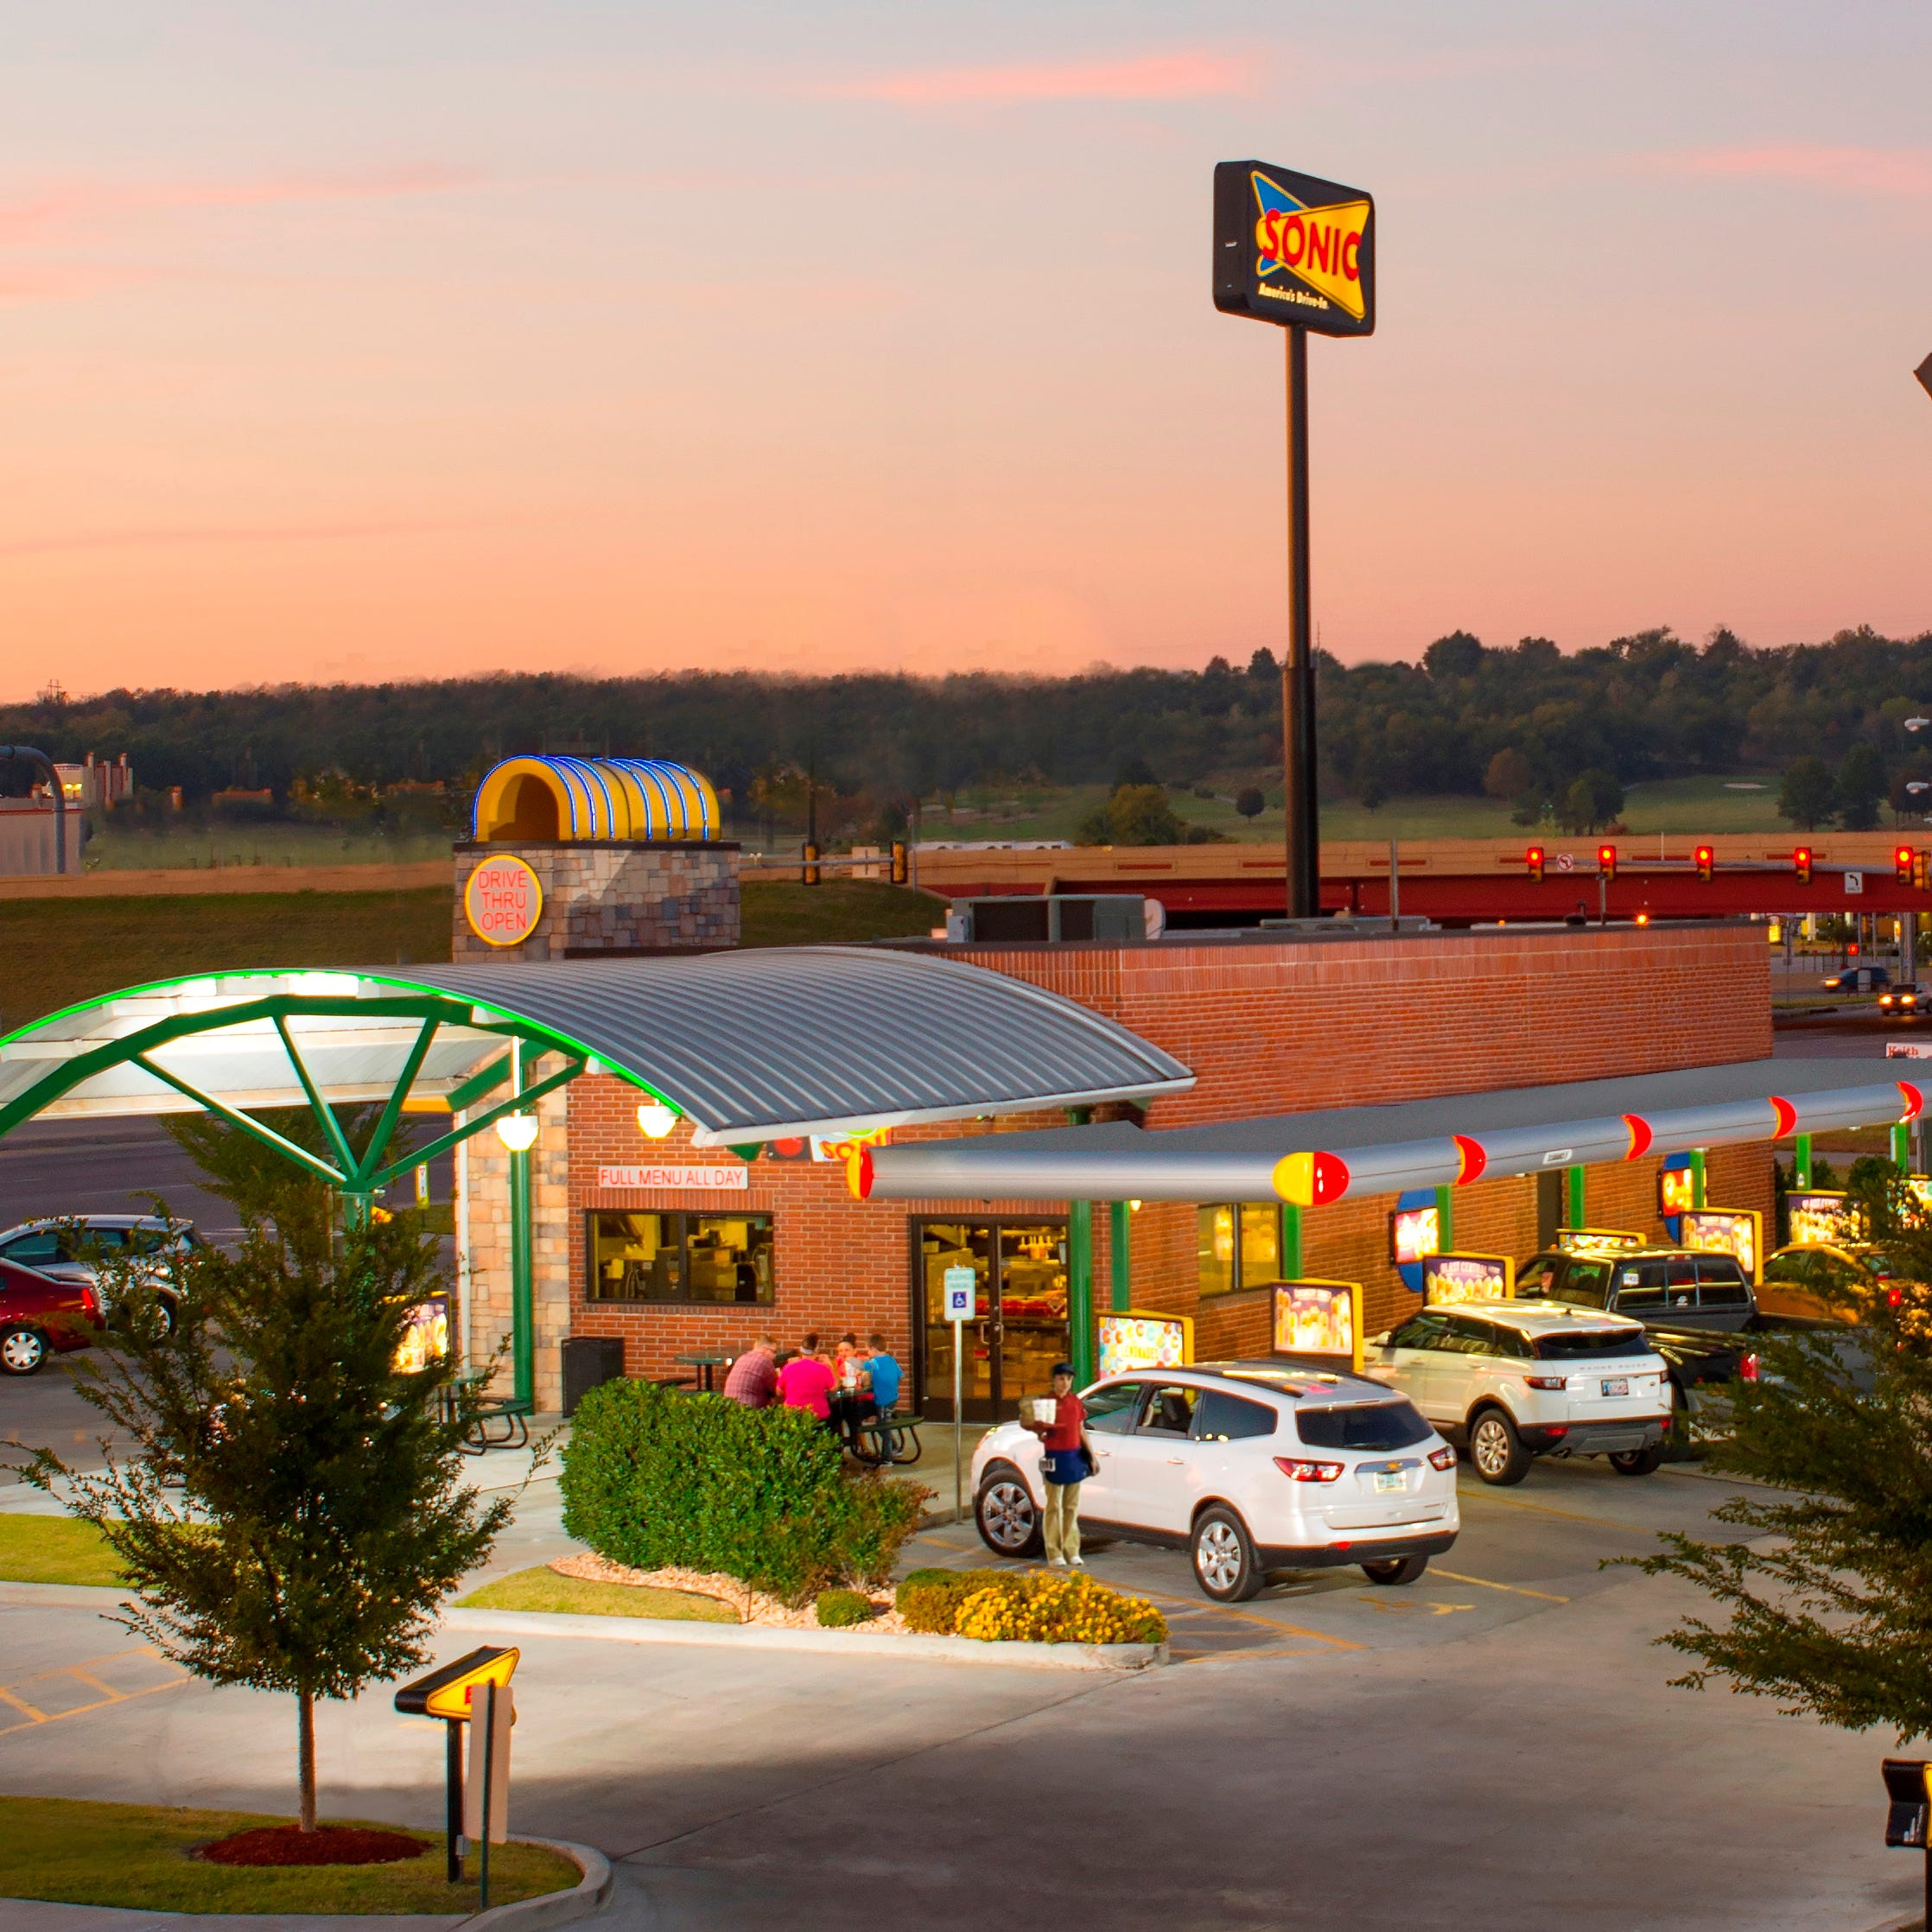 Want Happy Hour all day at SONIC? There's an app for that